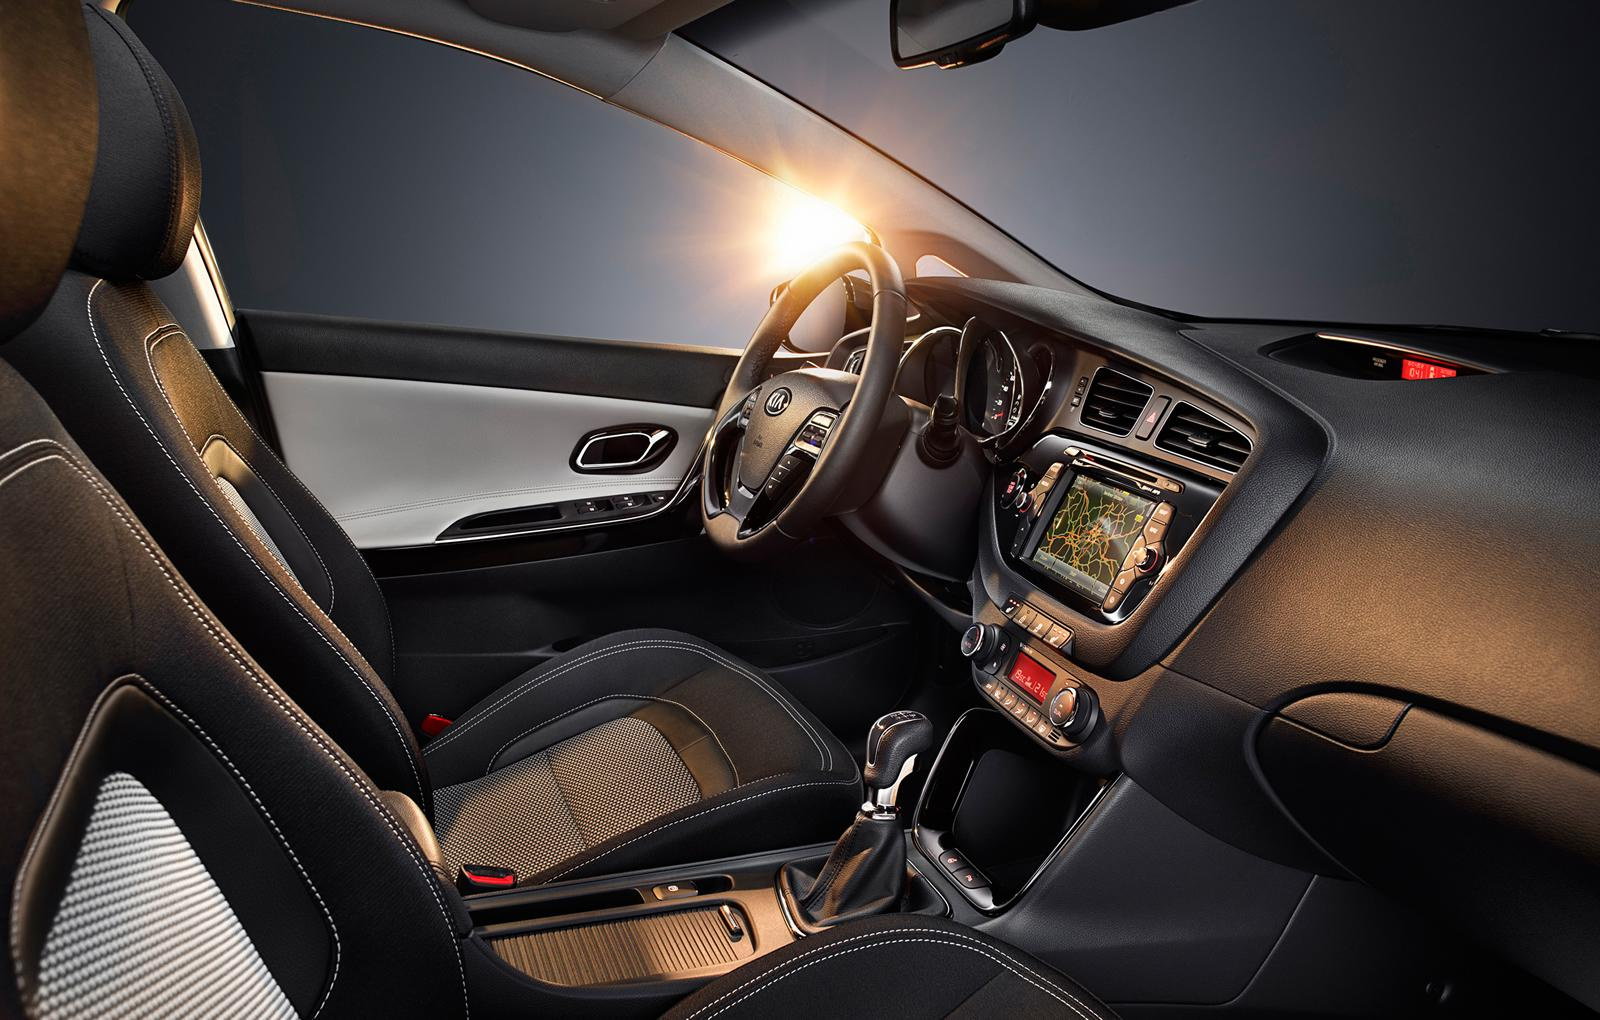 2013 Kia Ceed SW Interior Design